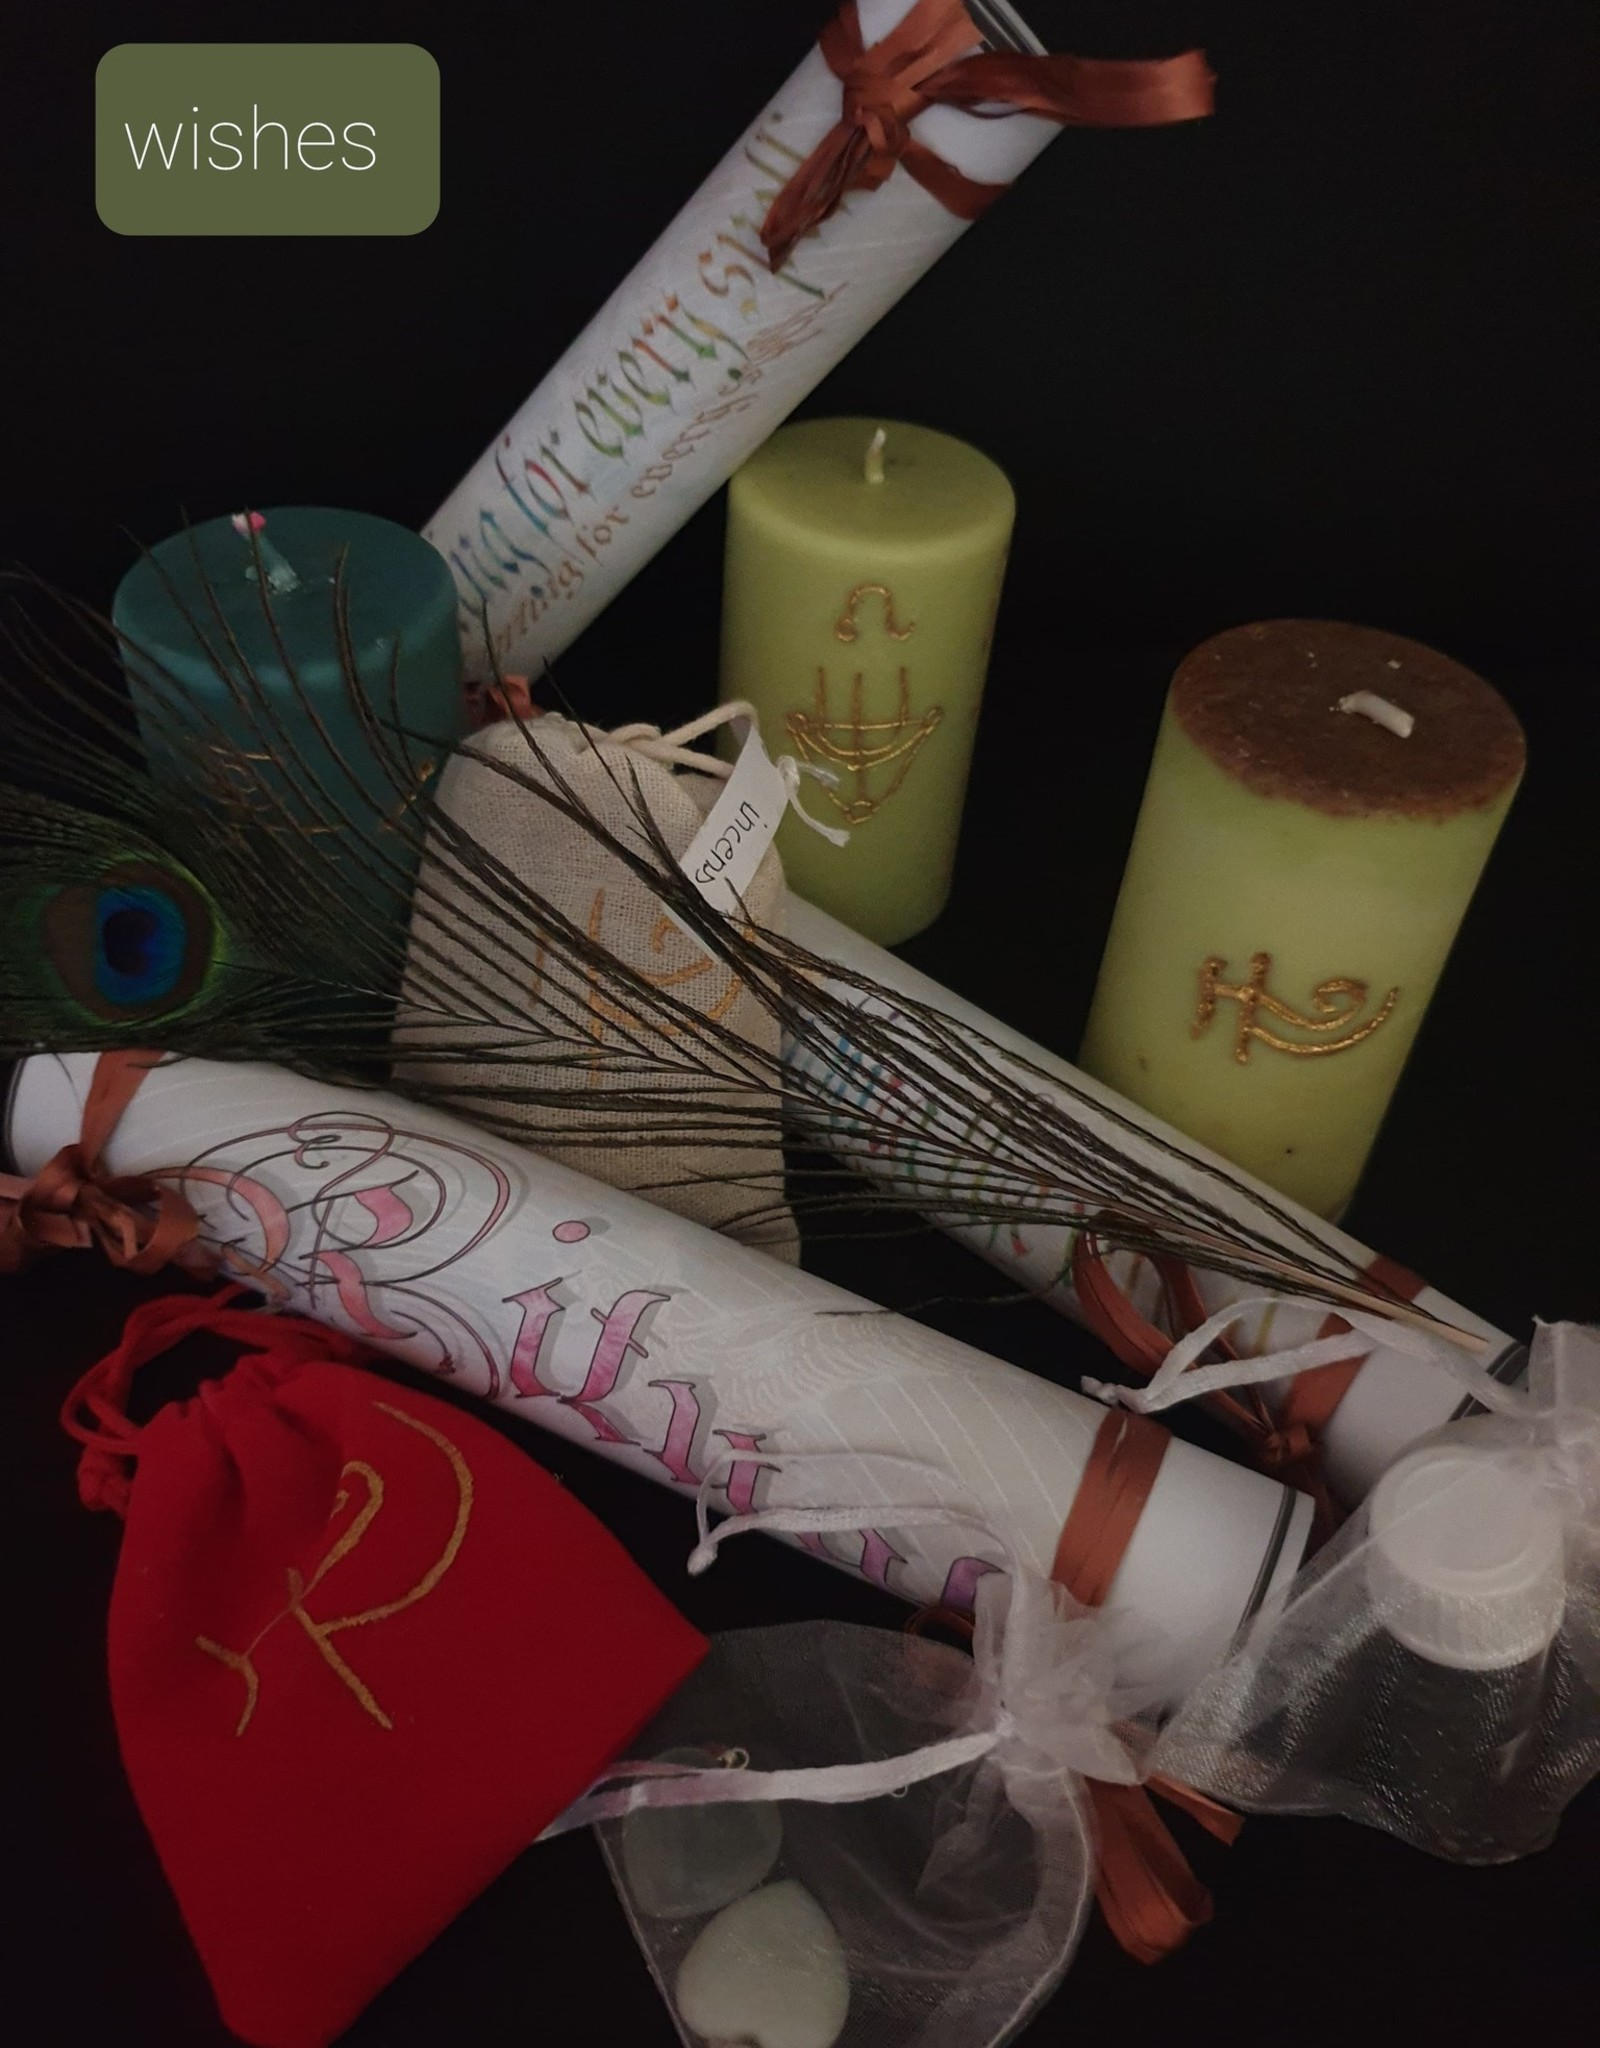 seazido - wevyra Ritual for requesting succes in business, to be carried out at home.